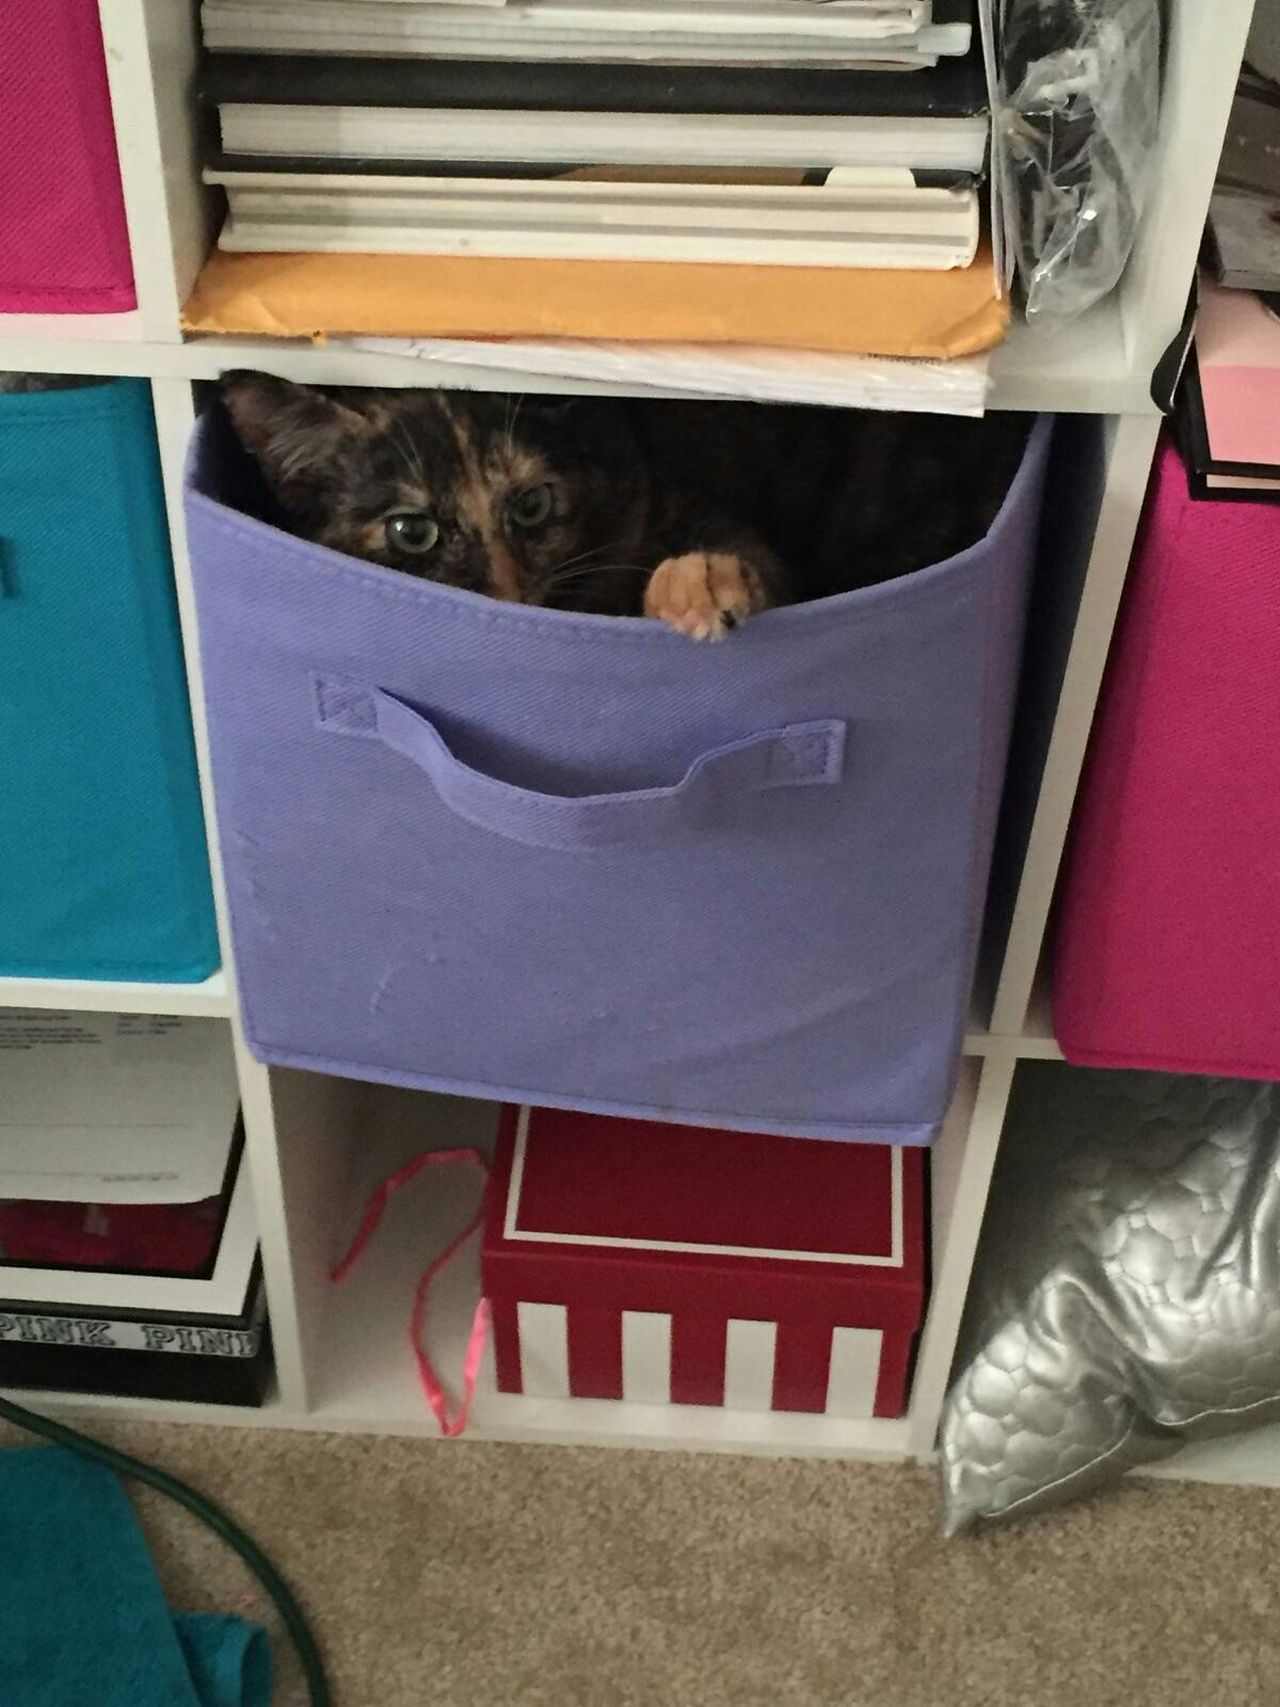 Hiding from the boy cats! I'm so sneaky! Hi! Kitten Adorable Tortoiseshelltabbycat Abbicat Abbicat Hiding Cat hiding